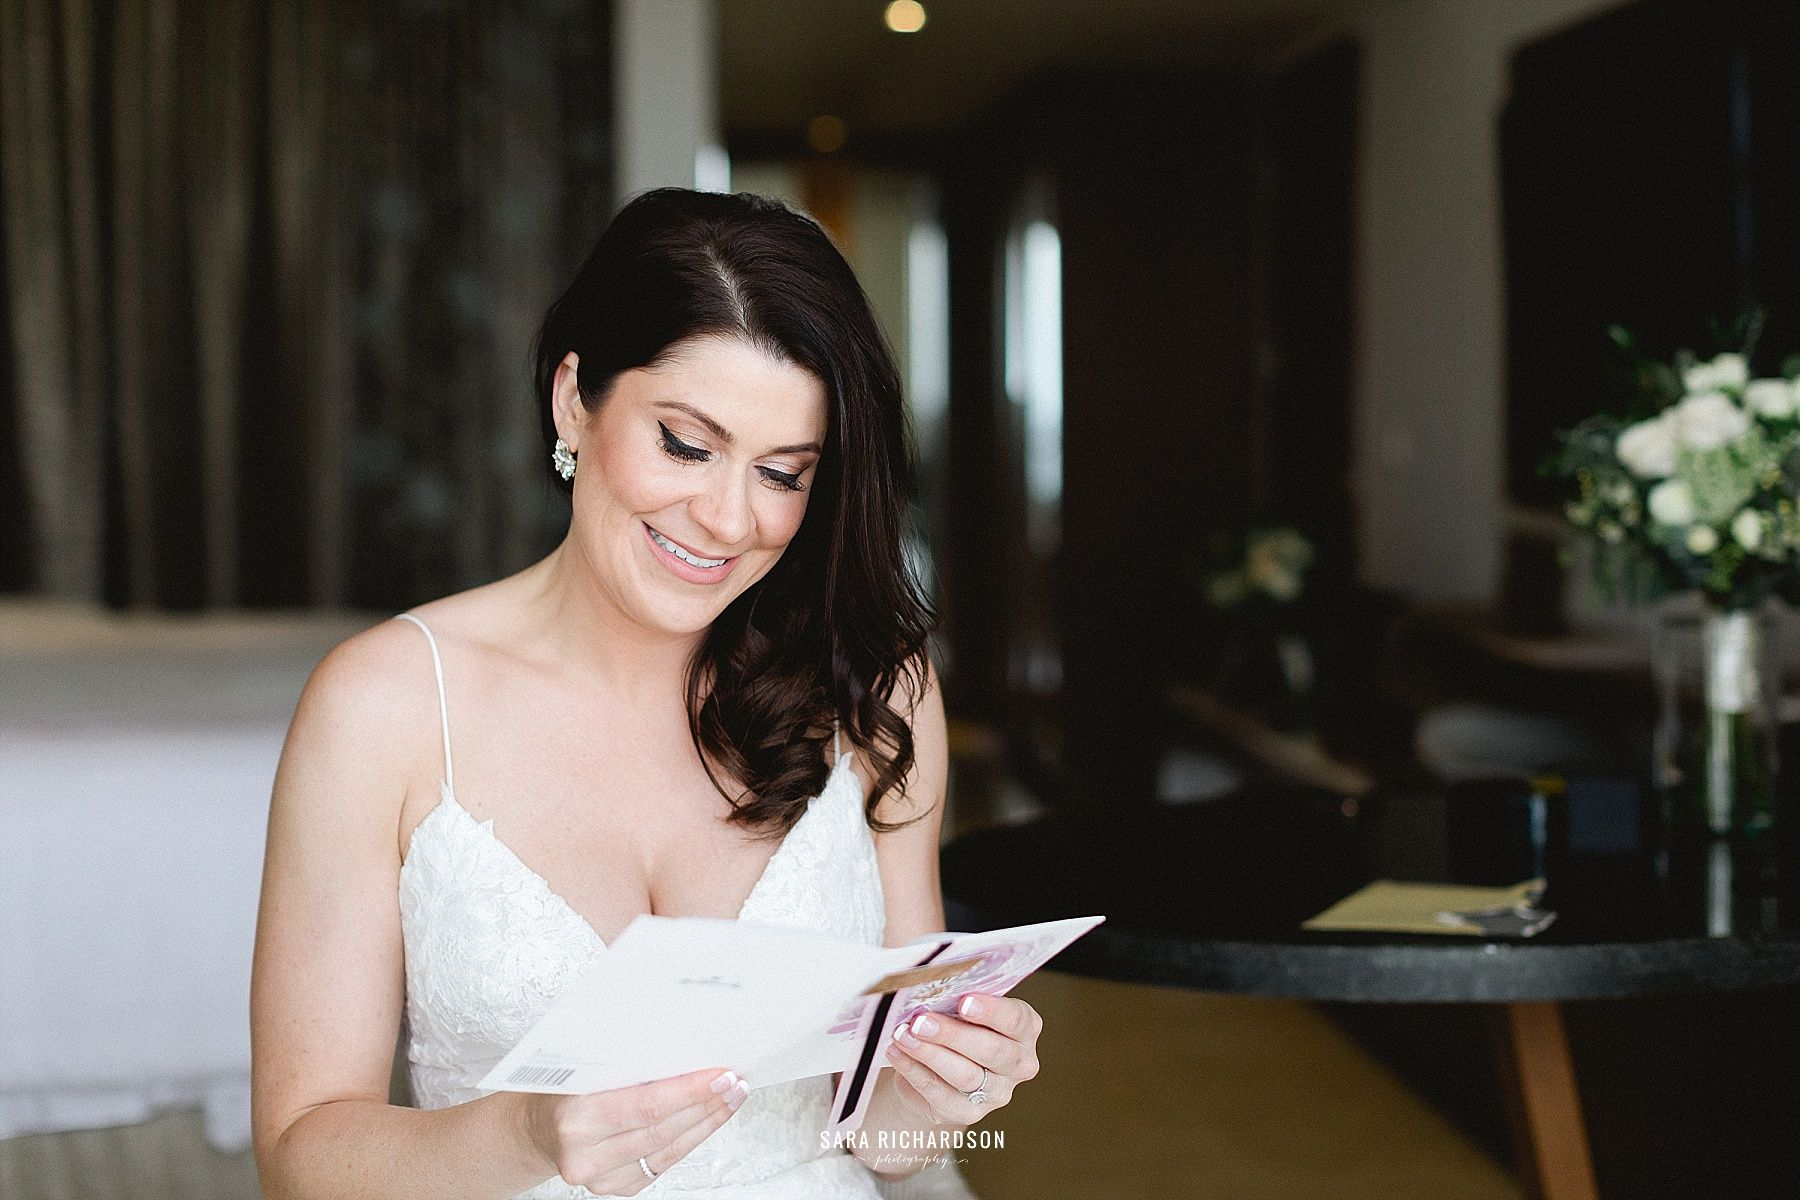 Our bride Sara received a letter from her Husband to be, right before the Ceremony began. Here she is captured reading it, and Sara Richardson was able to capture the perfect shots!